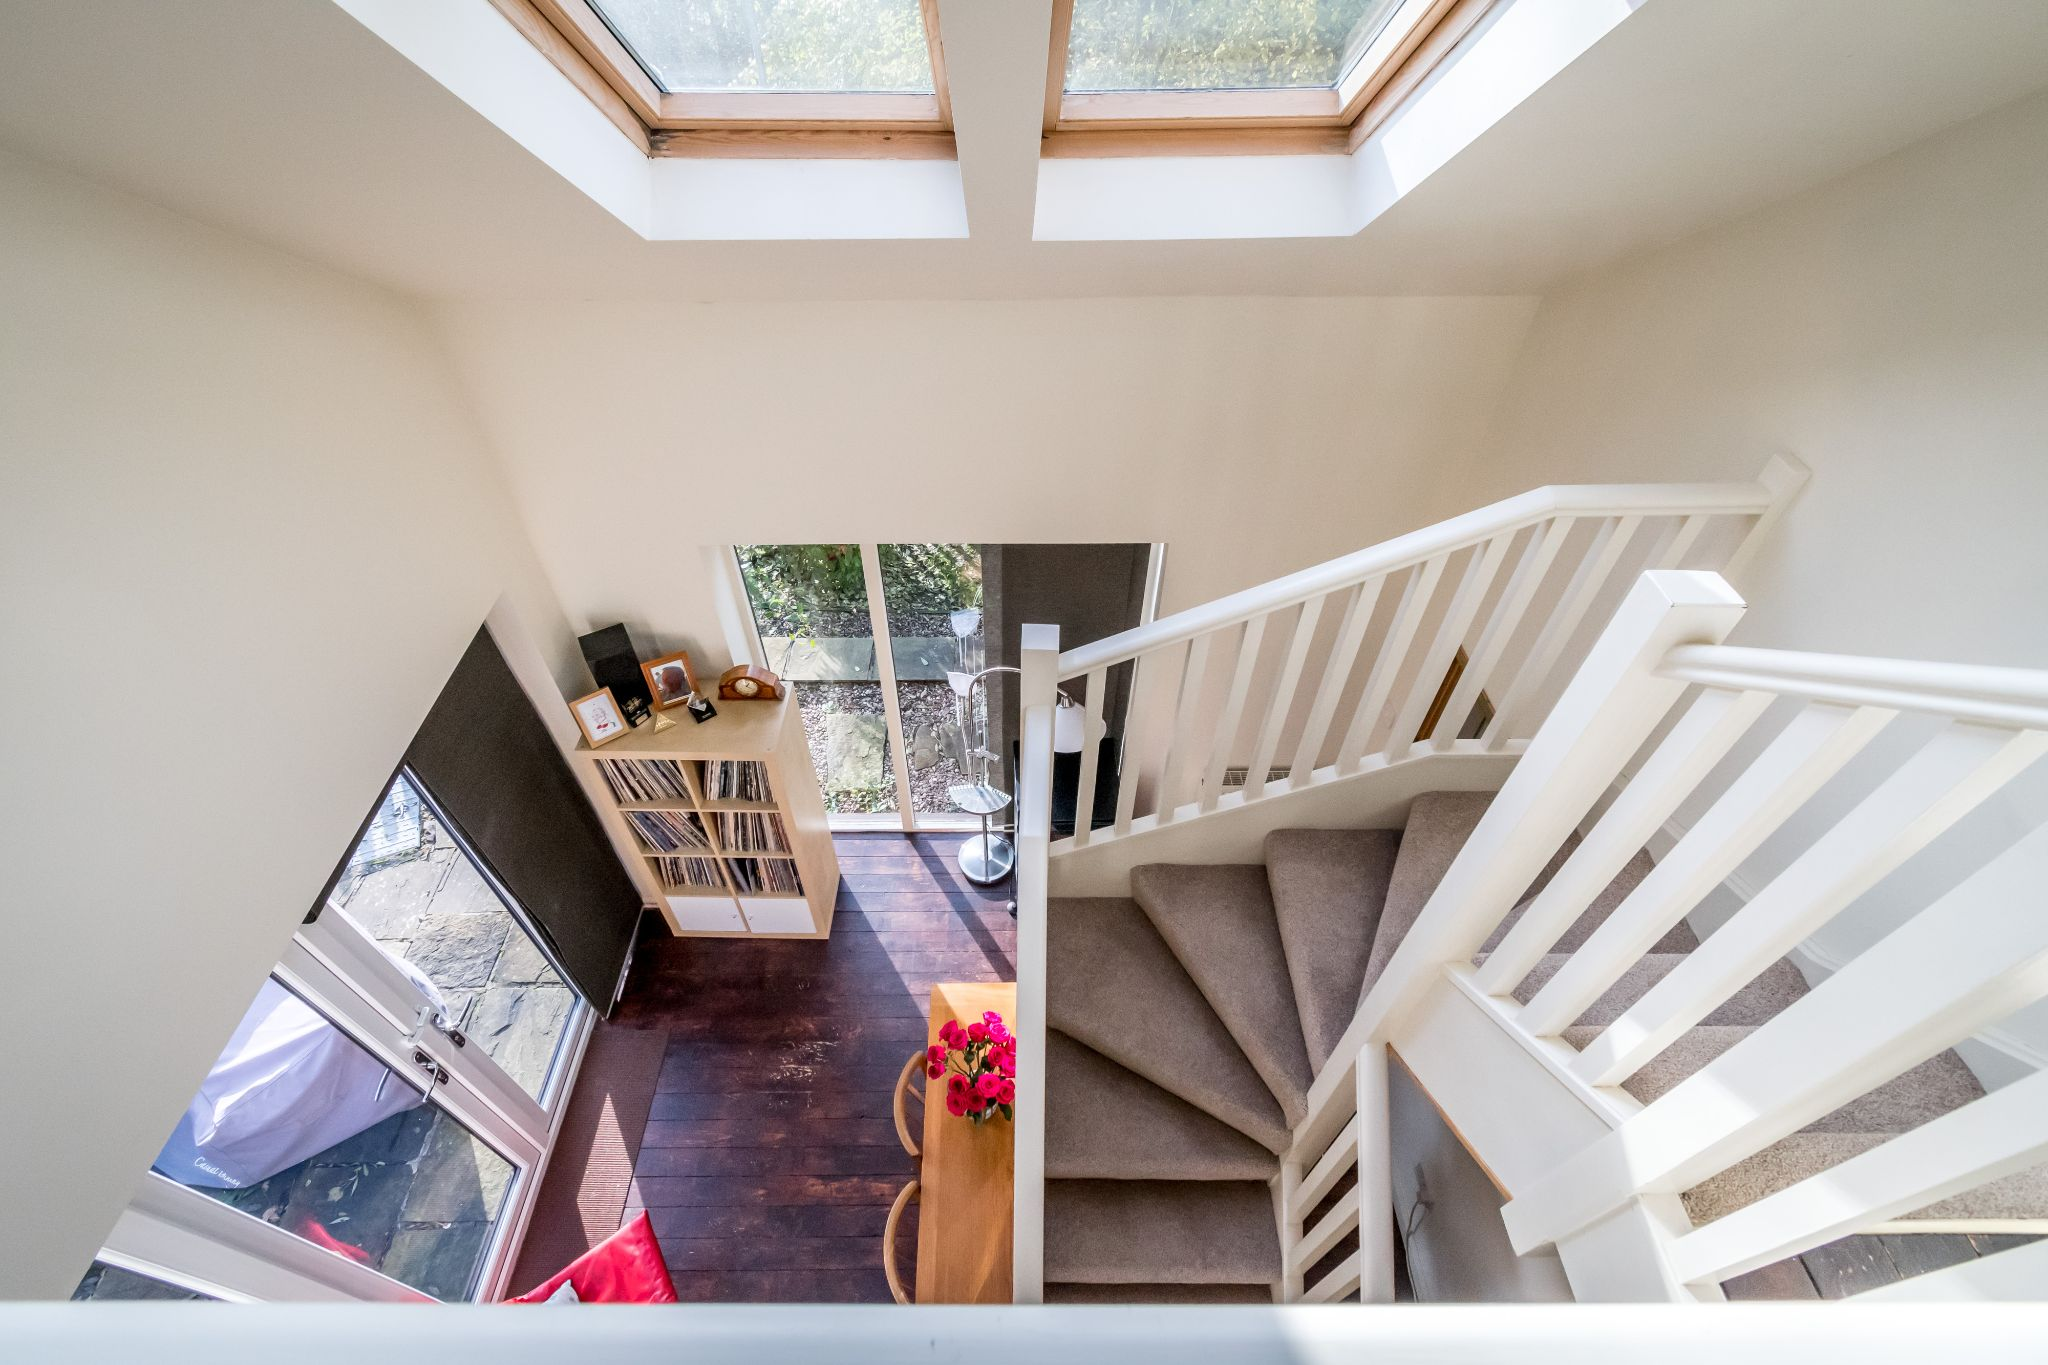 3 bedroom detached house SSTC in Brighouse - Looking over the banister from the ground floor landing